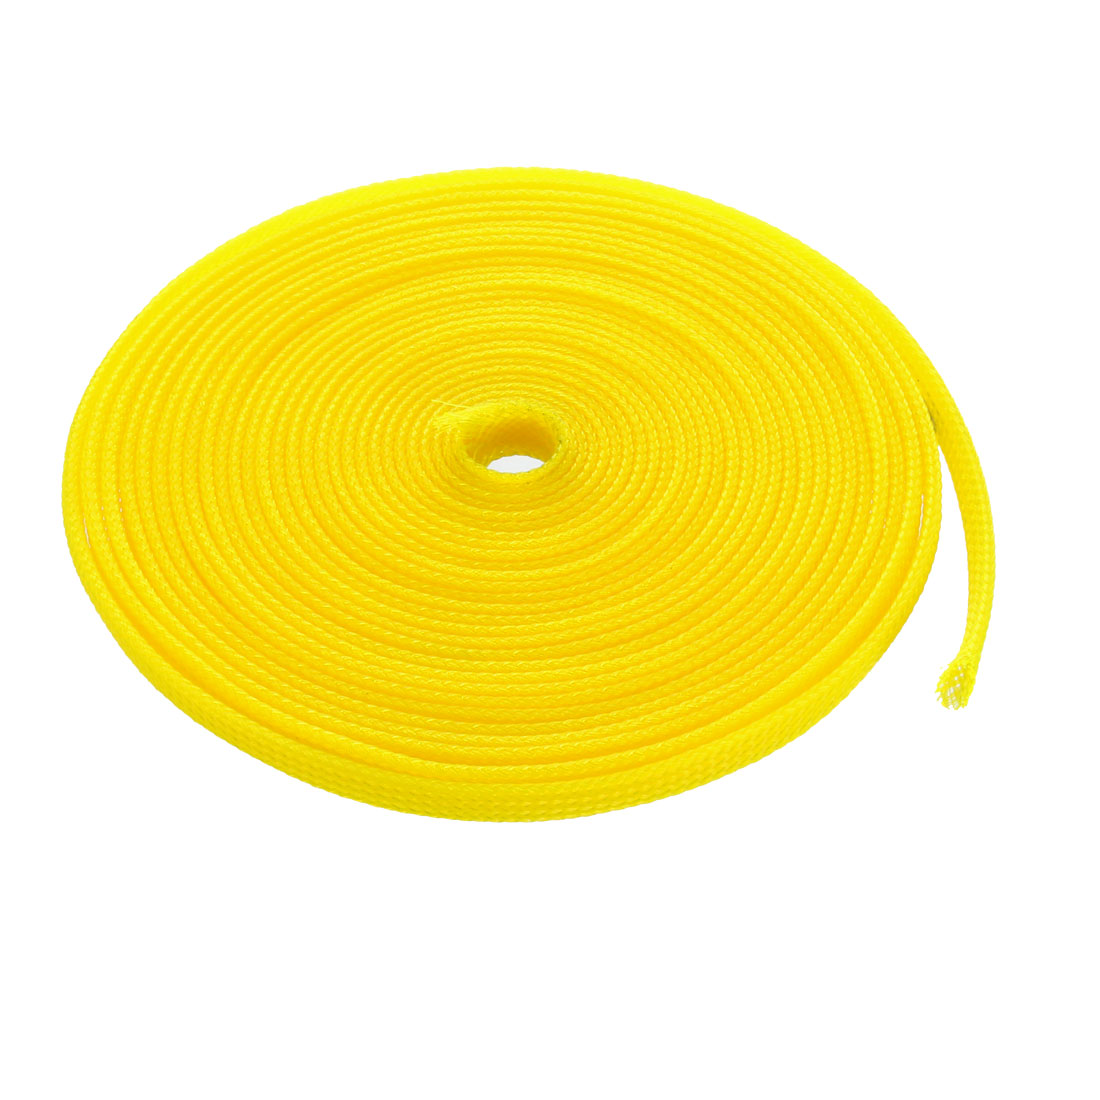 3mm Dia Tight Braided PET Expandable Sleeving Cable Wire Wrap Sheath Yellow 5M